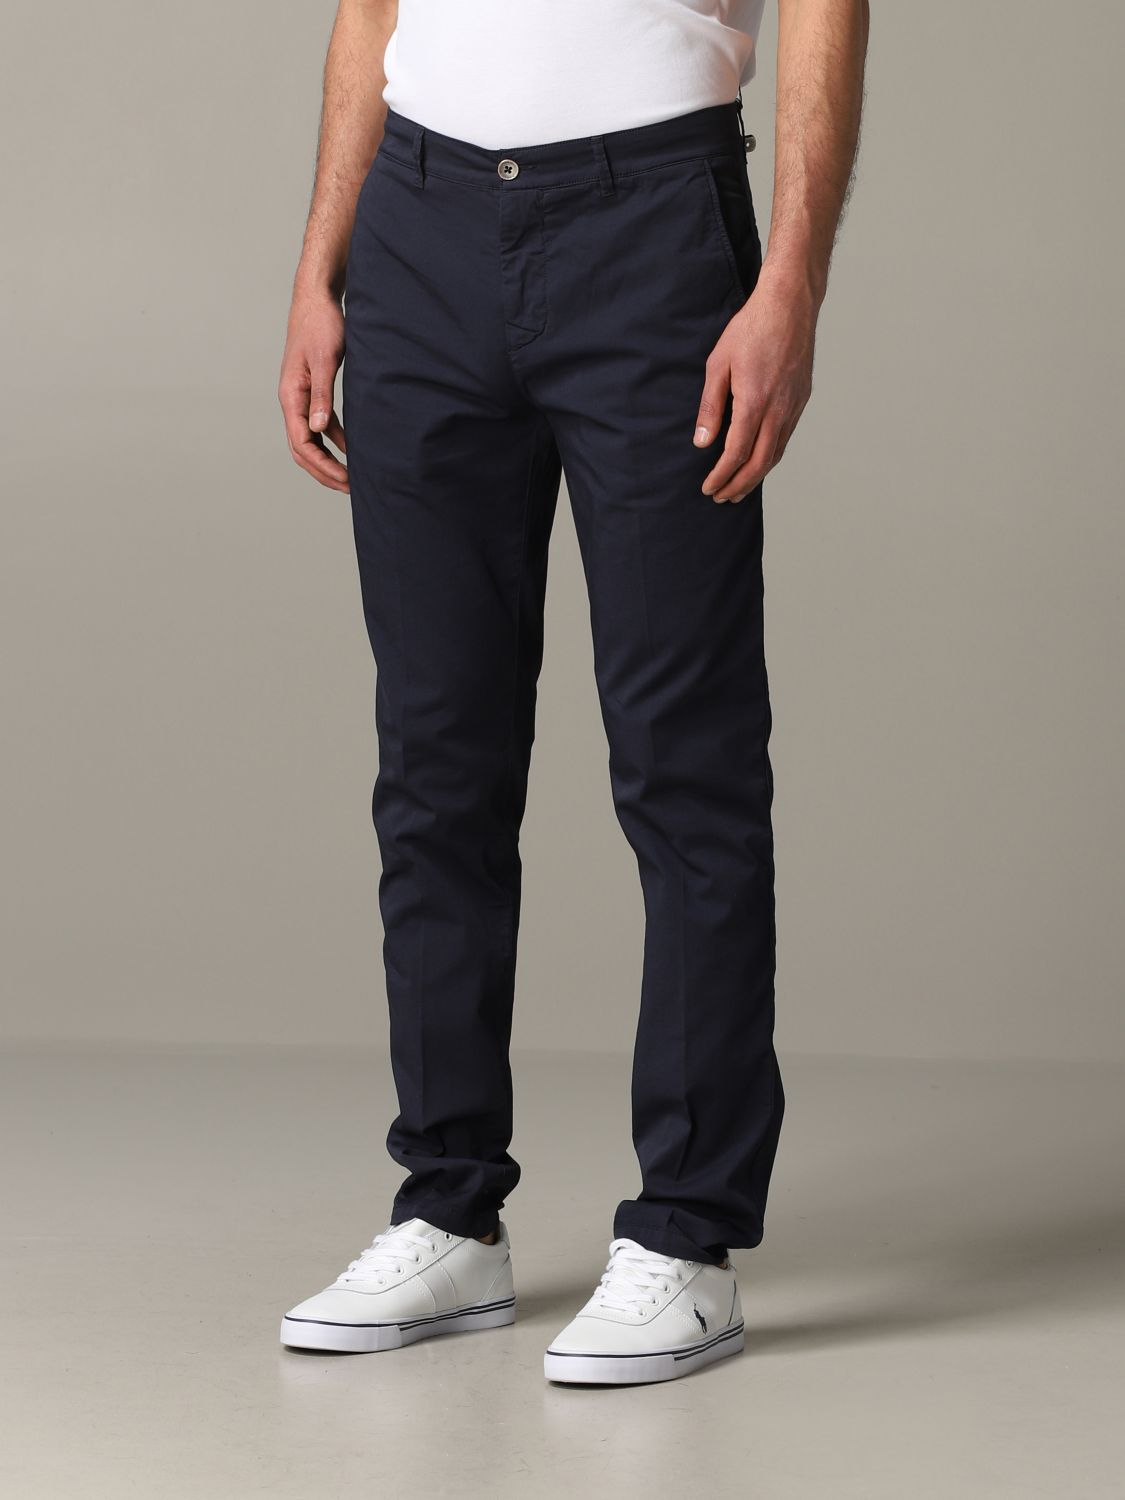 Hose Brooksfield: Hose herren Brooksfield navy 4